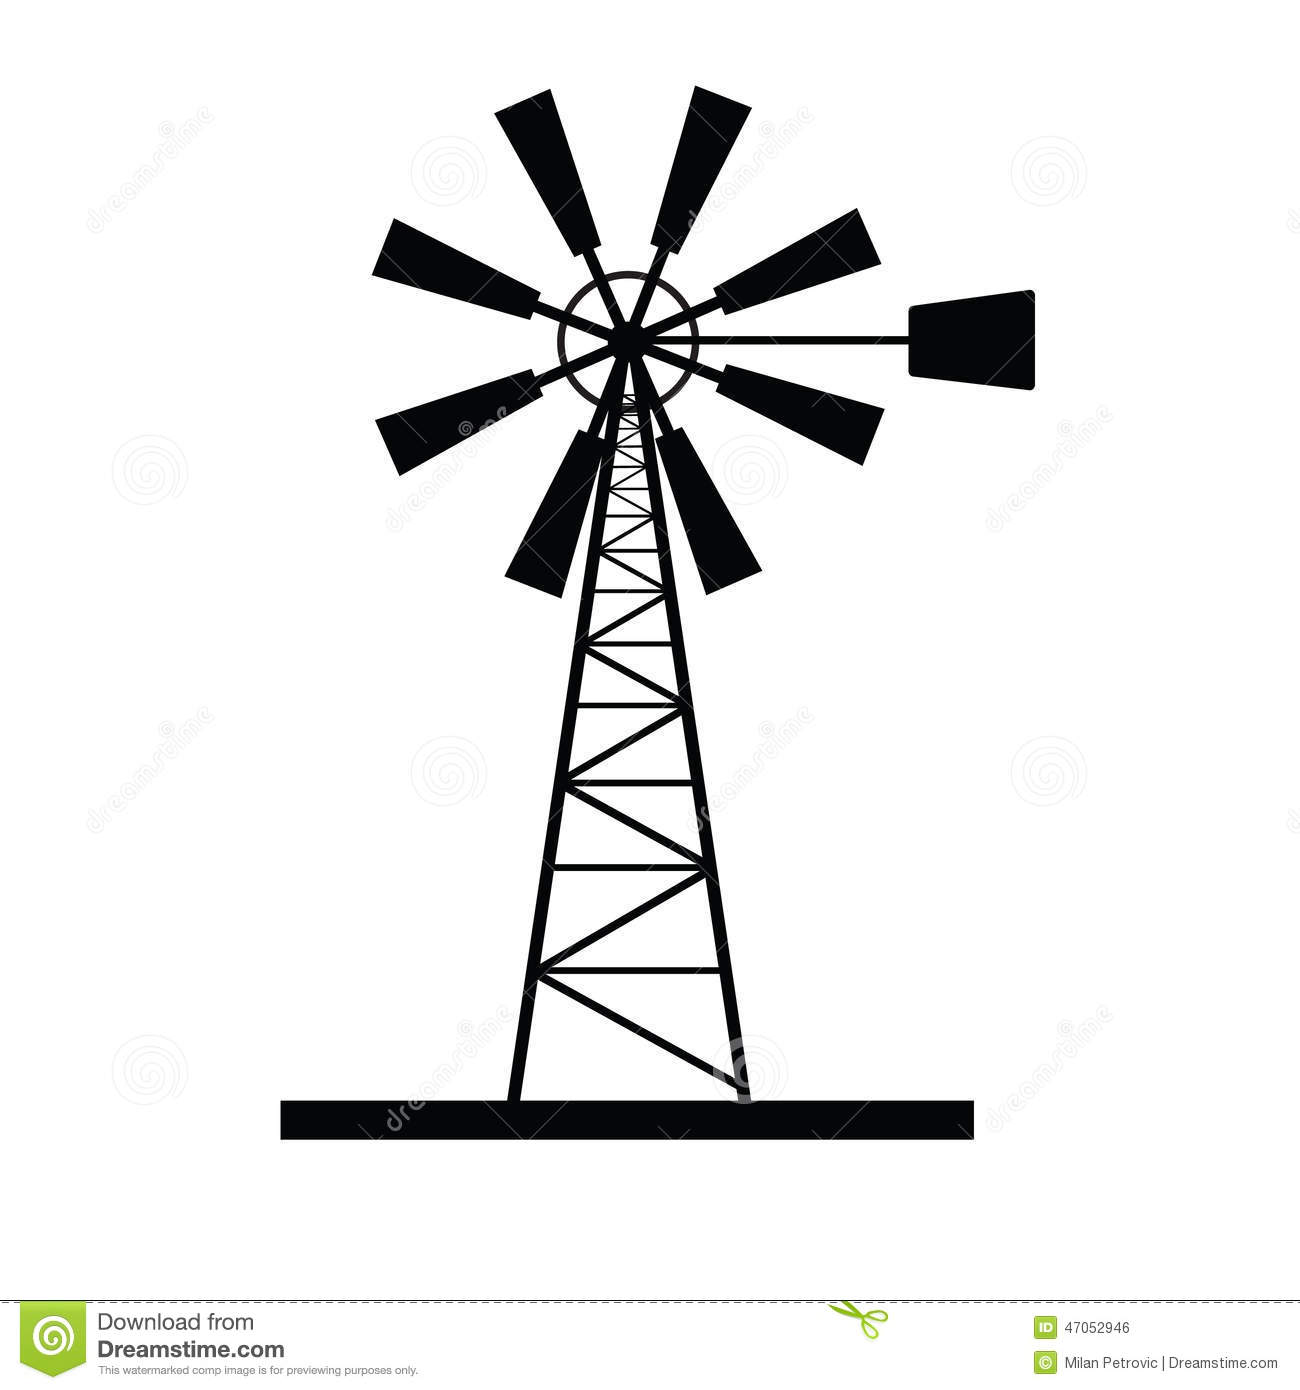 Windmill icon vector stock vector. Image of wind, circle